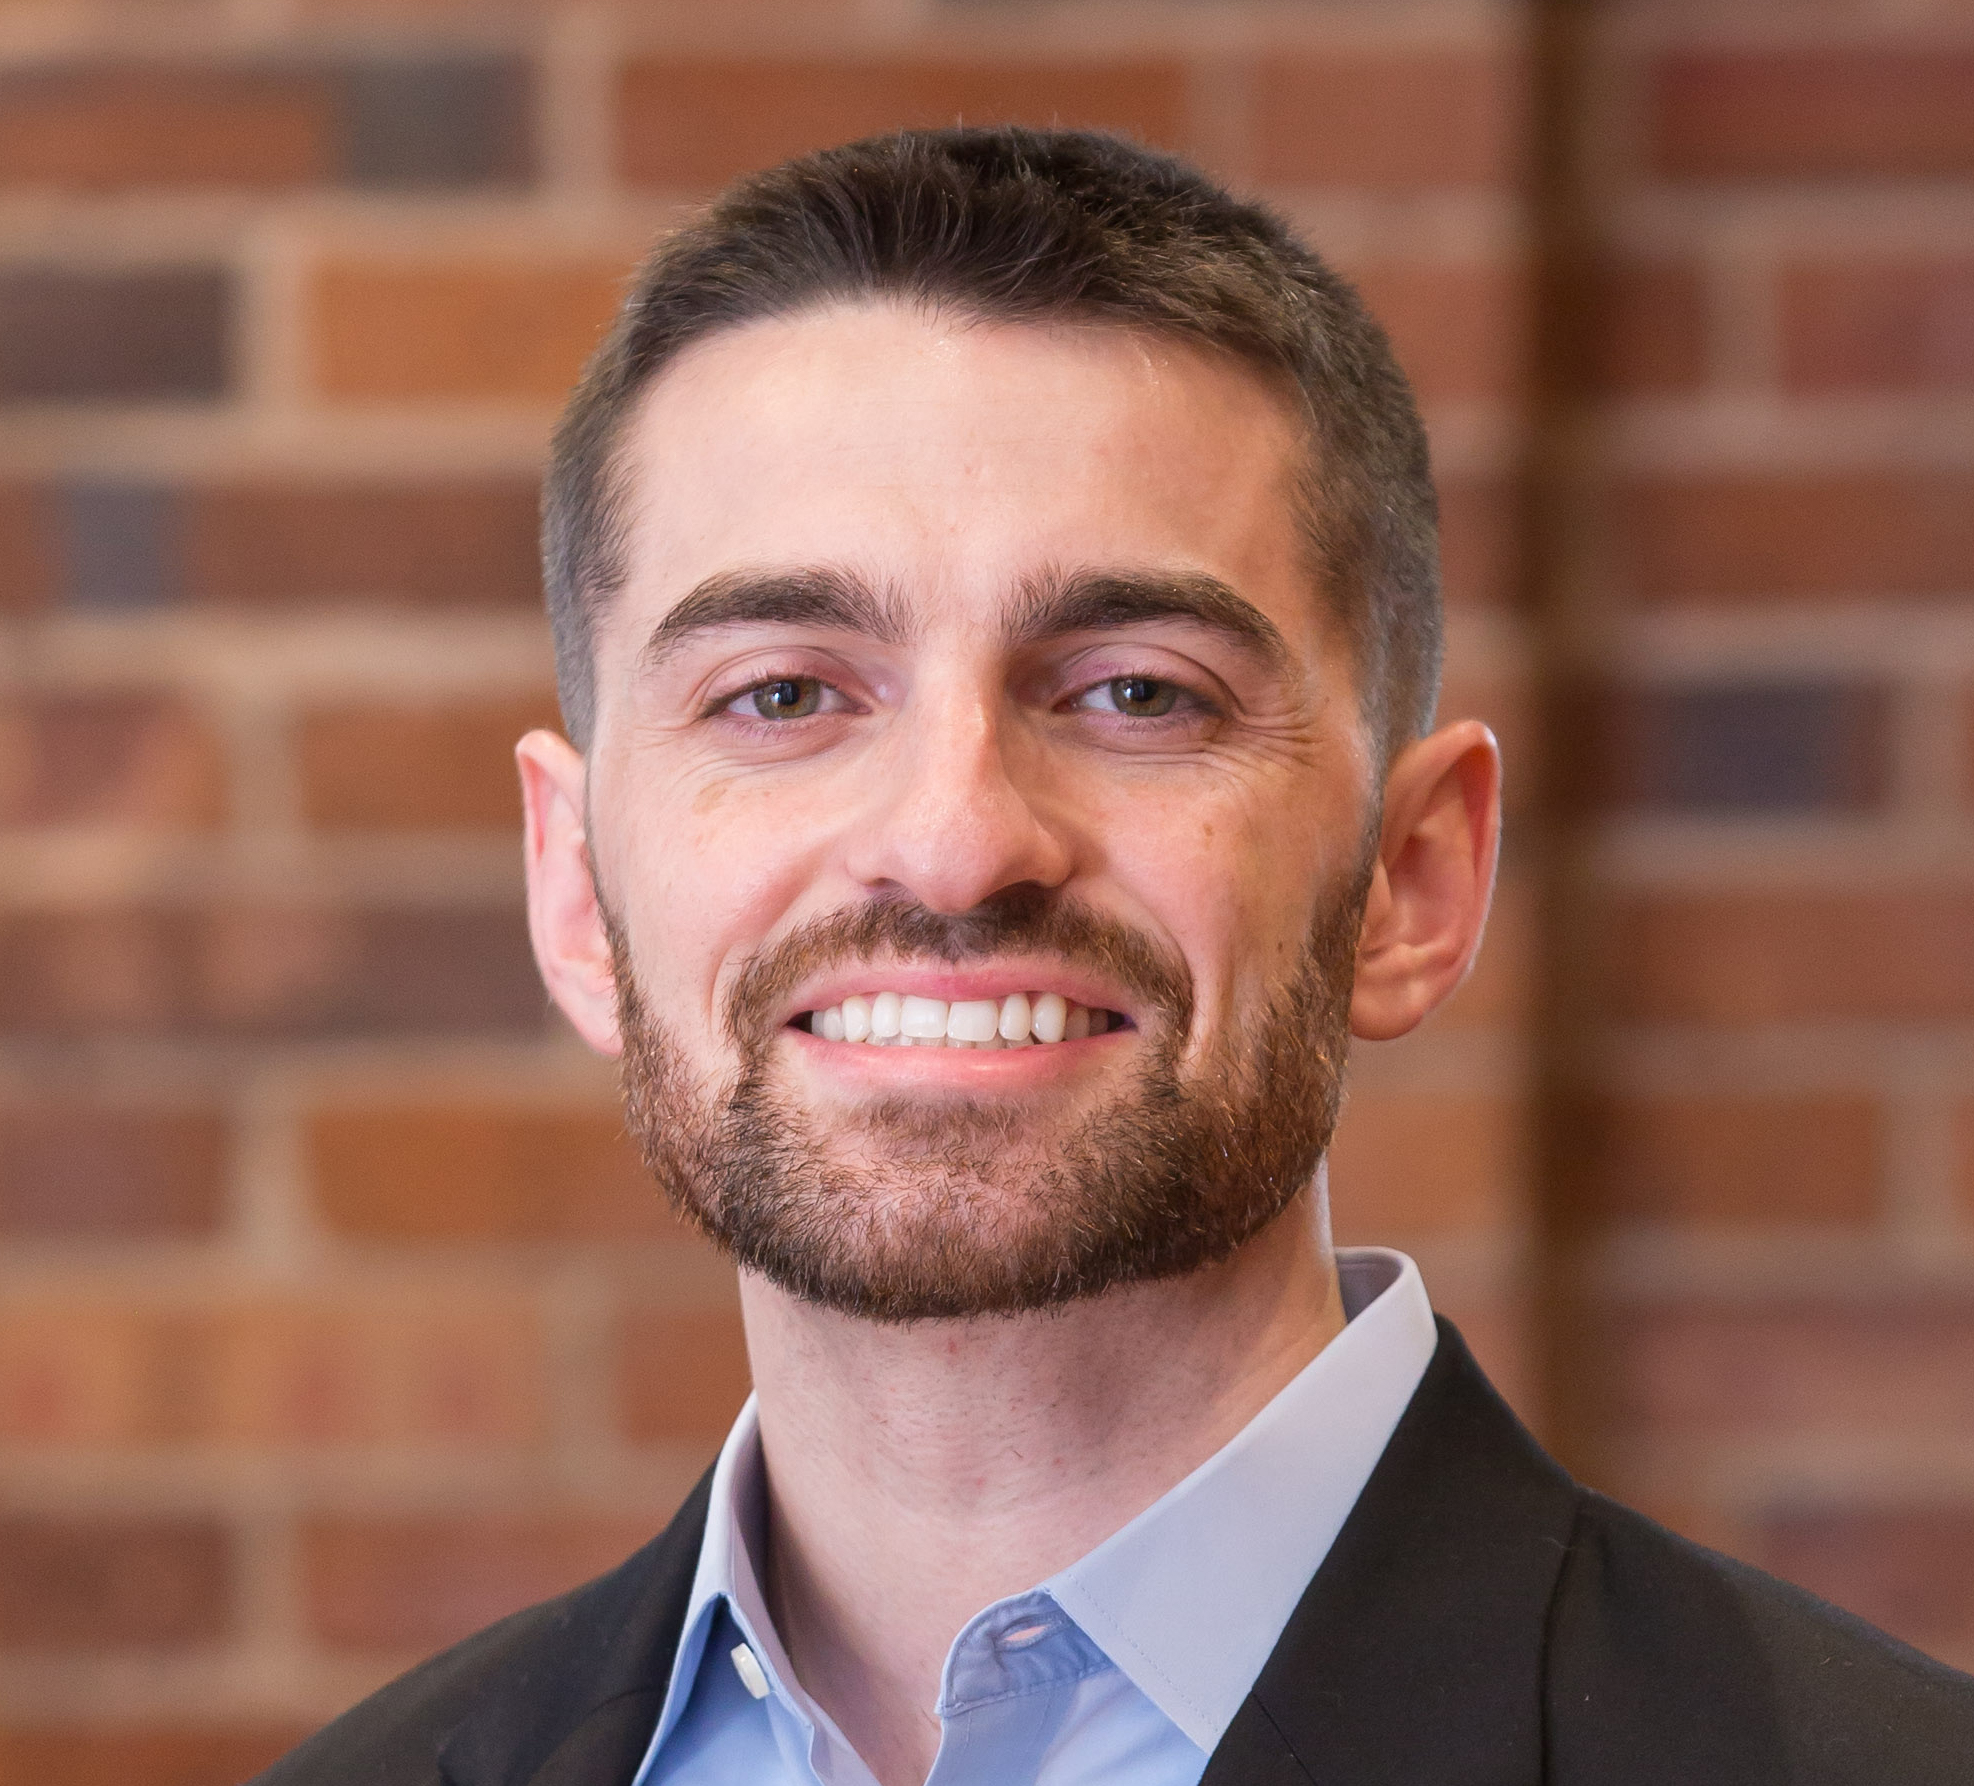 """""""With Catalyst HRE, I feel like I am part of a family organization where everyone is moving towards the common goal of success without compromising our core values""""  CONNOR RYAN, Catalyst Analyst"""